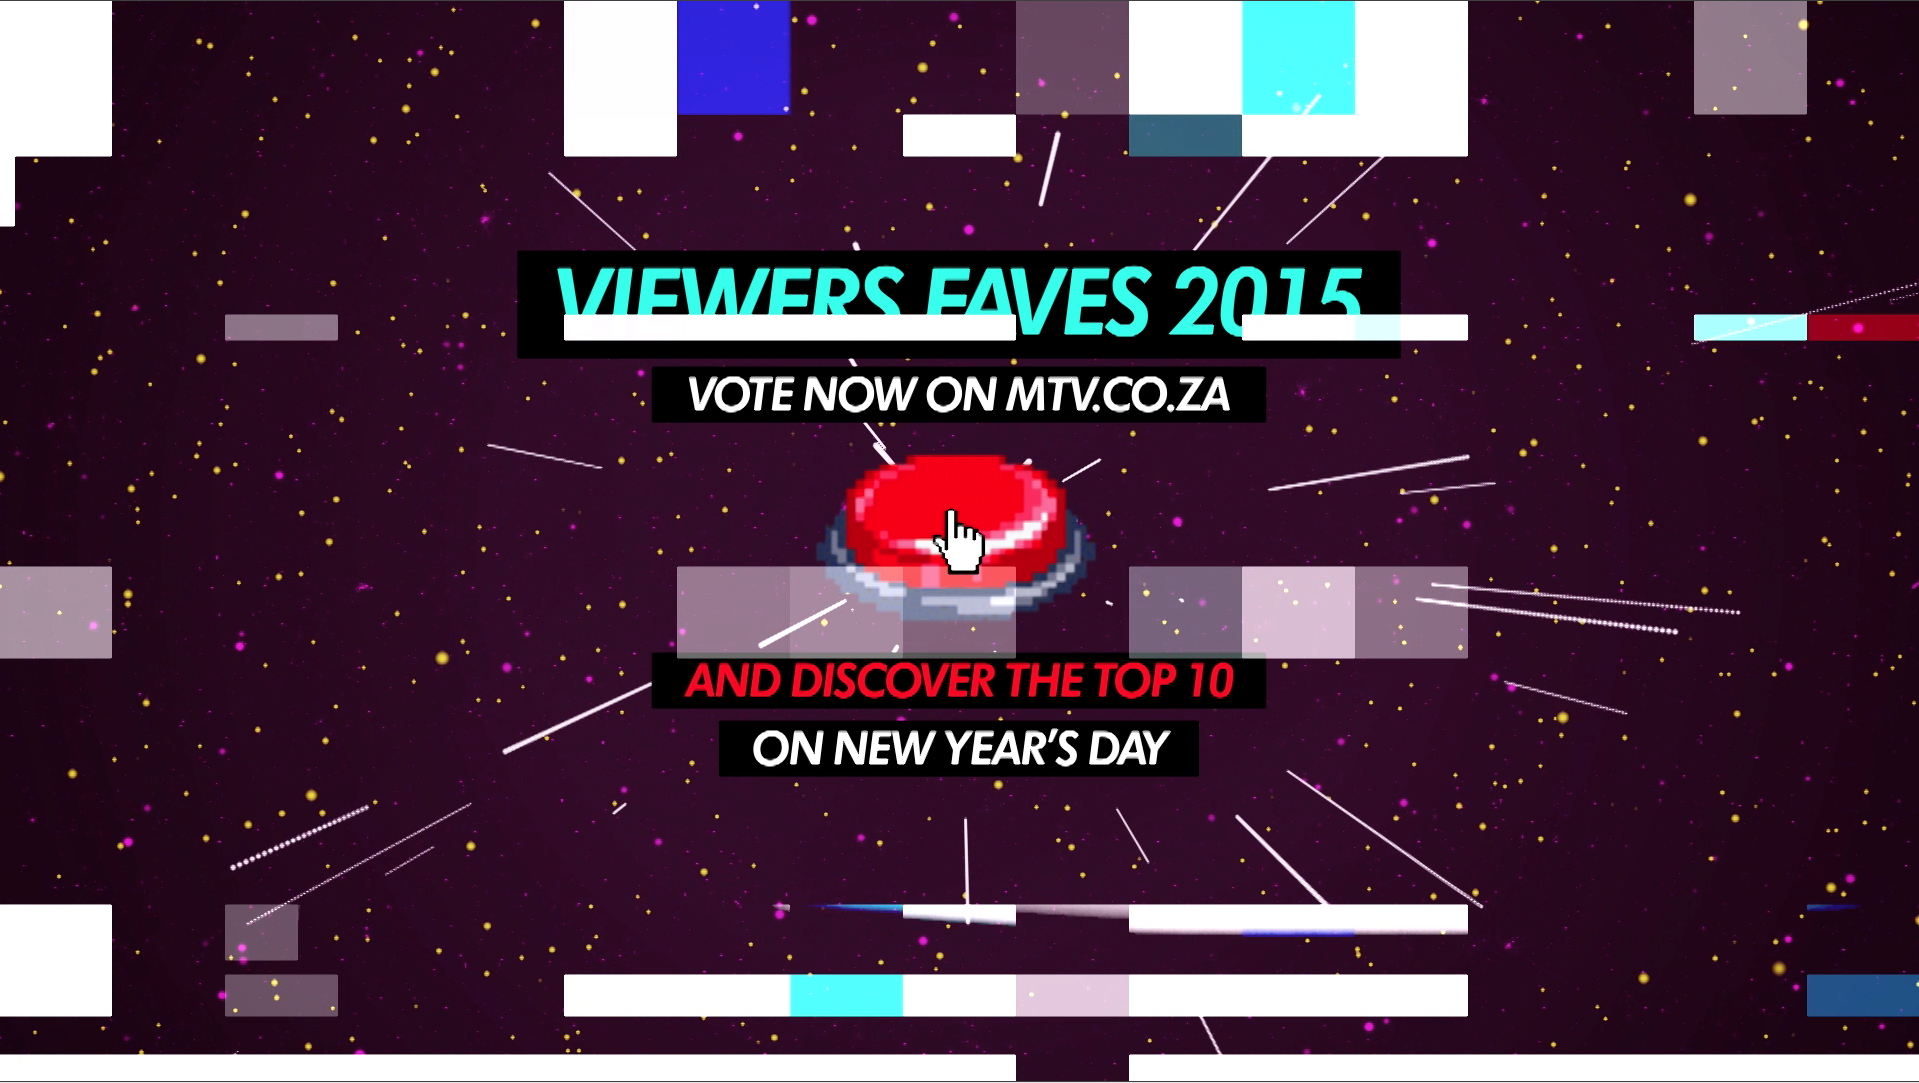 Viewers Faves 2015